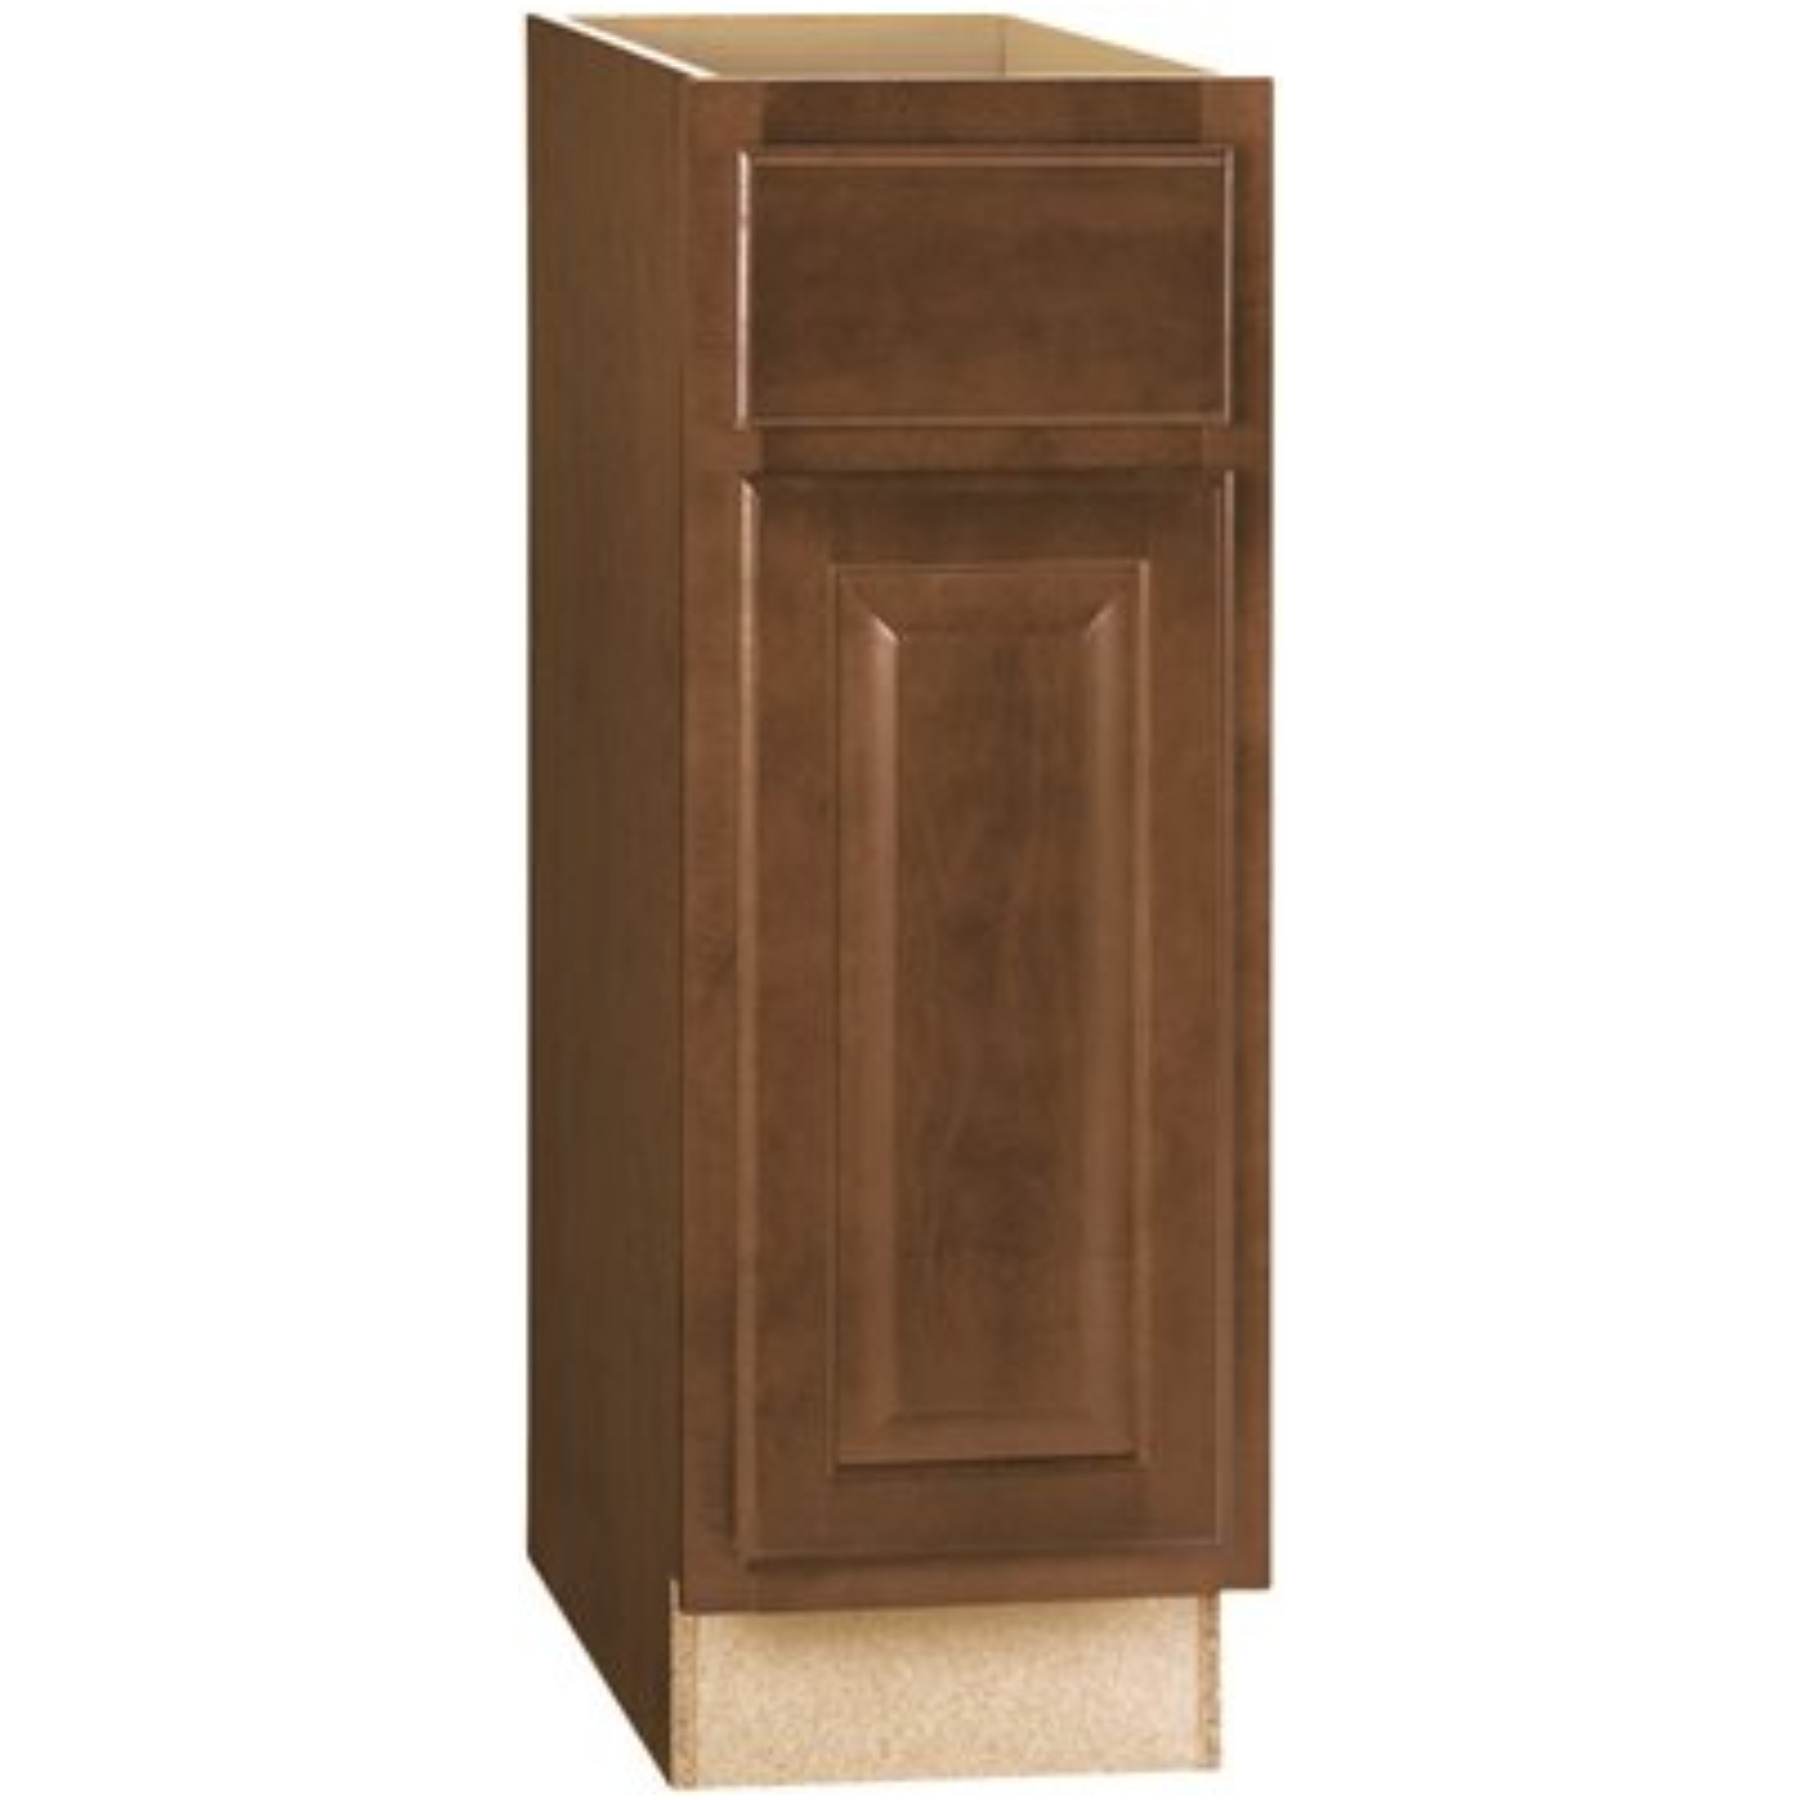 RSI HOME PRODUCTS HAMILTON BASE CABINET, FULLY ASSEMBLED, RAISED PANEL, CAFE, 12X34-1/2X24 IN.